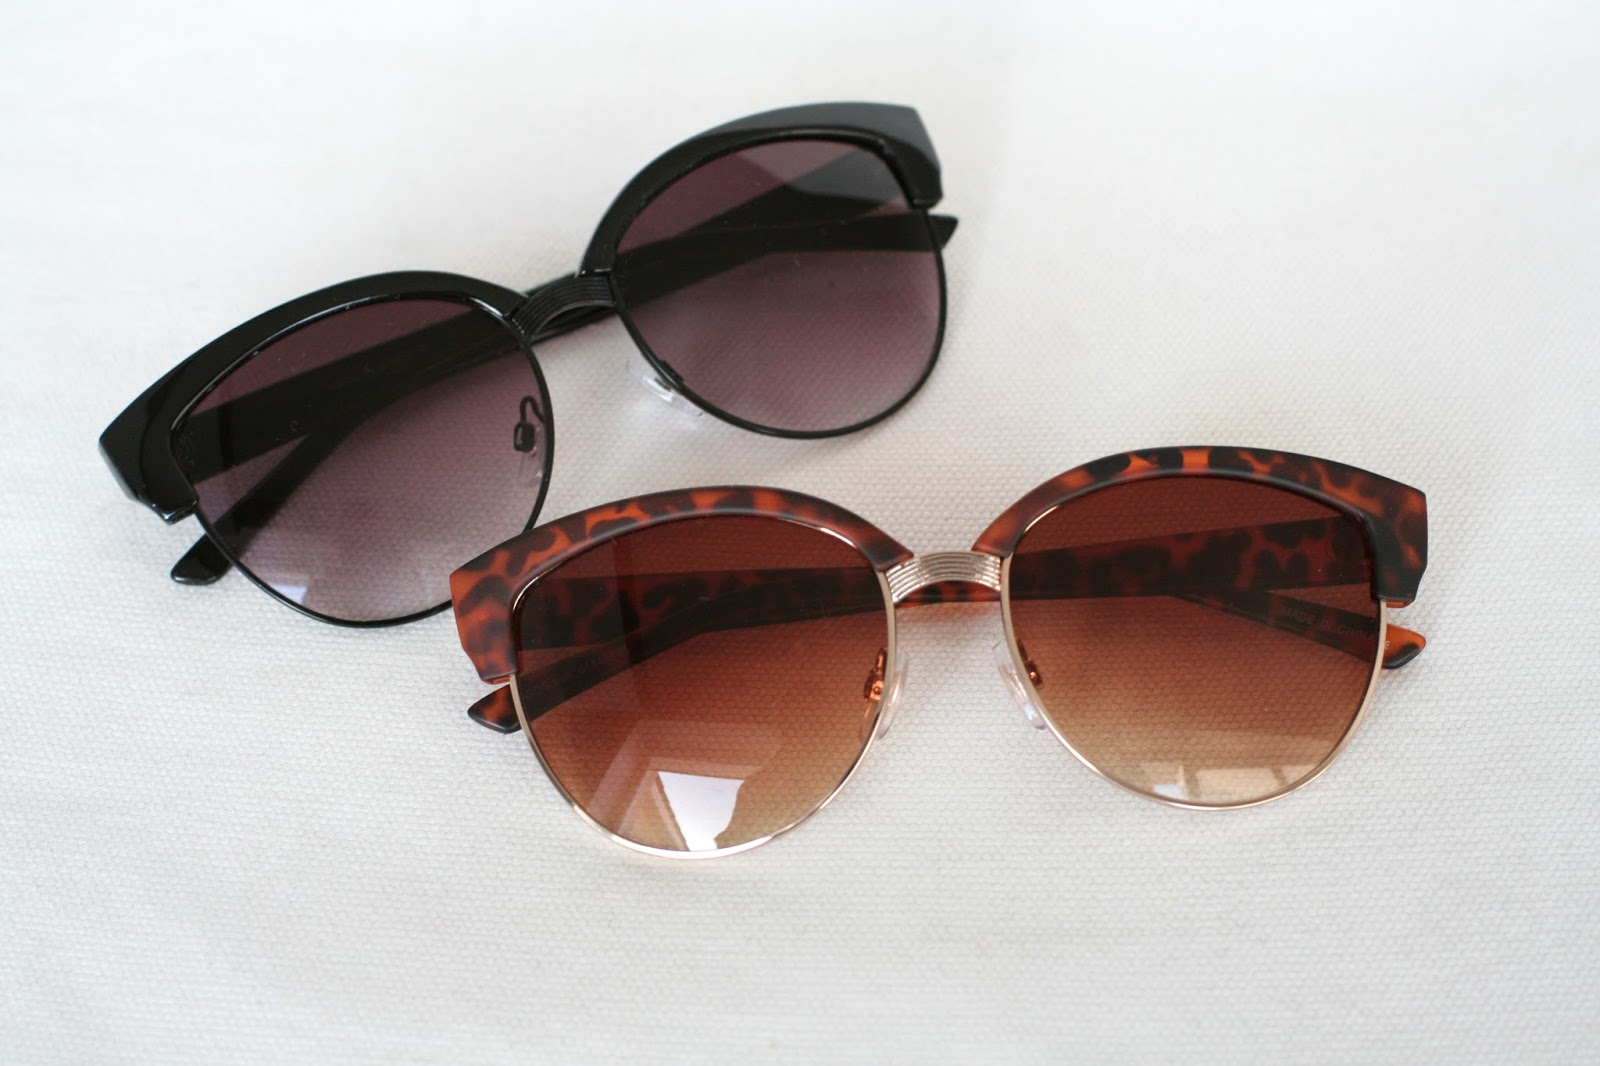 b3ea7683076 One of my favourite sunglasses of all time  ASOS Half Frame Angular Cat Eye  Sunglasses - Black €15.58  ASOS Half Frame Angular Cat Eye Sunglasses -  Tortoise ...